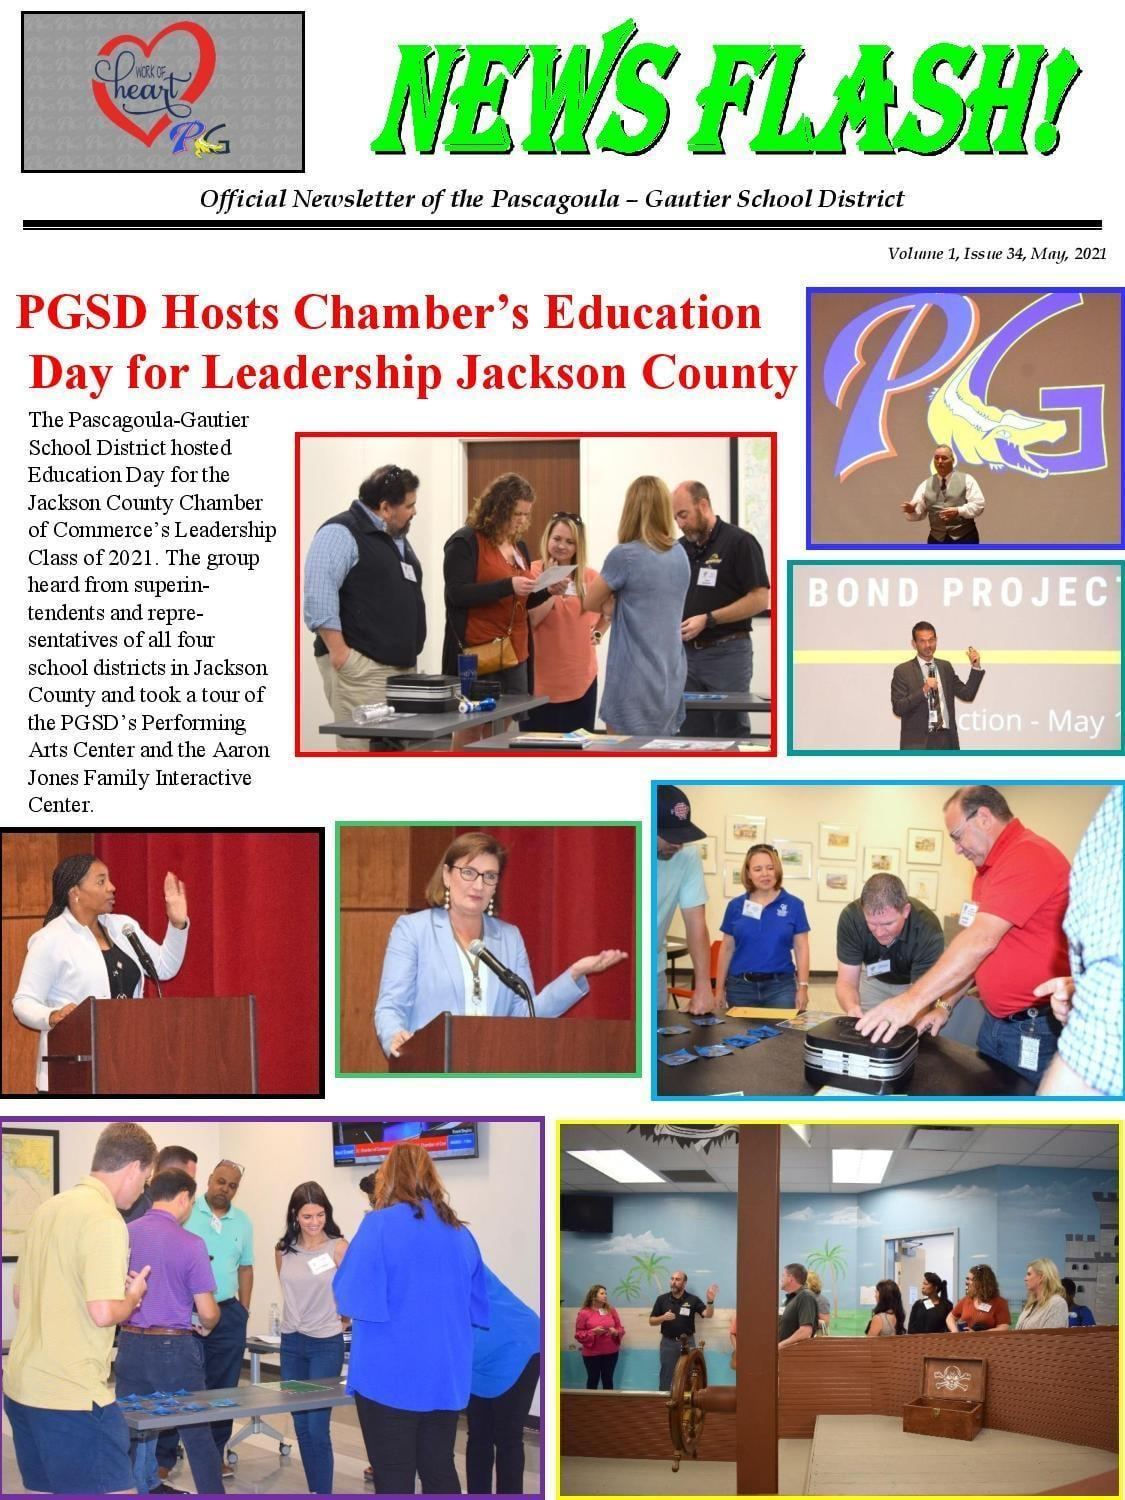 PGSD Hosts Chamber's Education Day for Leadership Jackson County